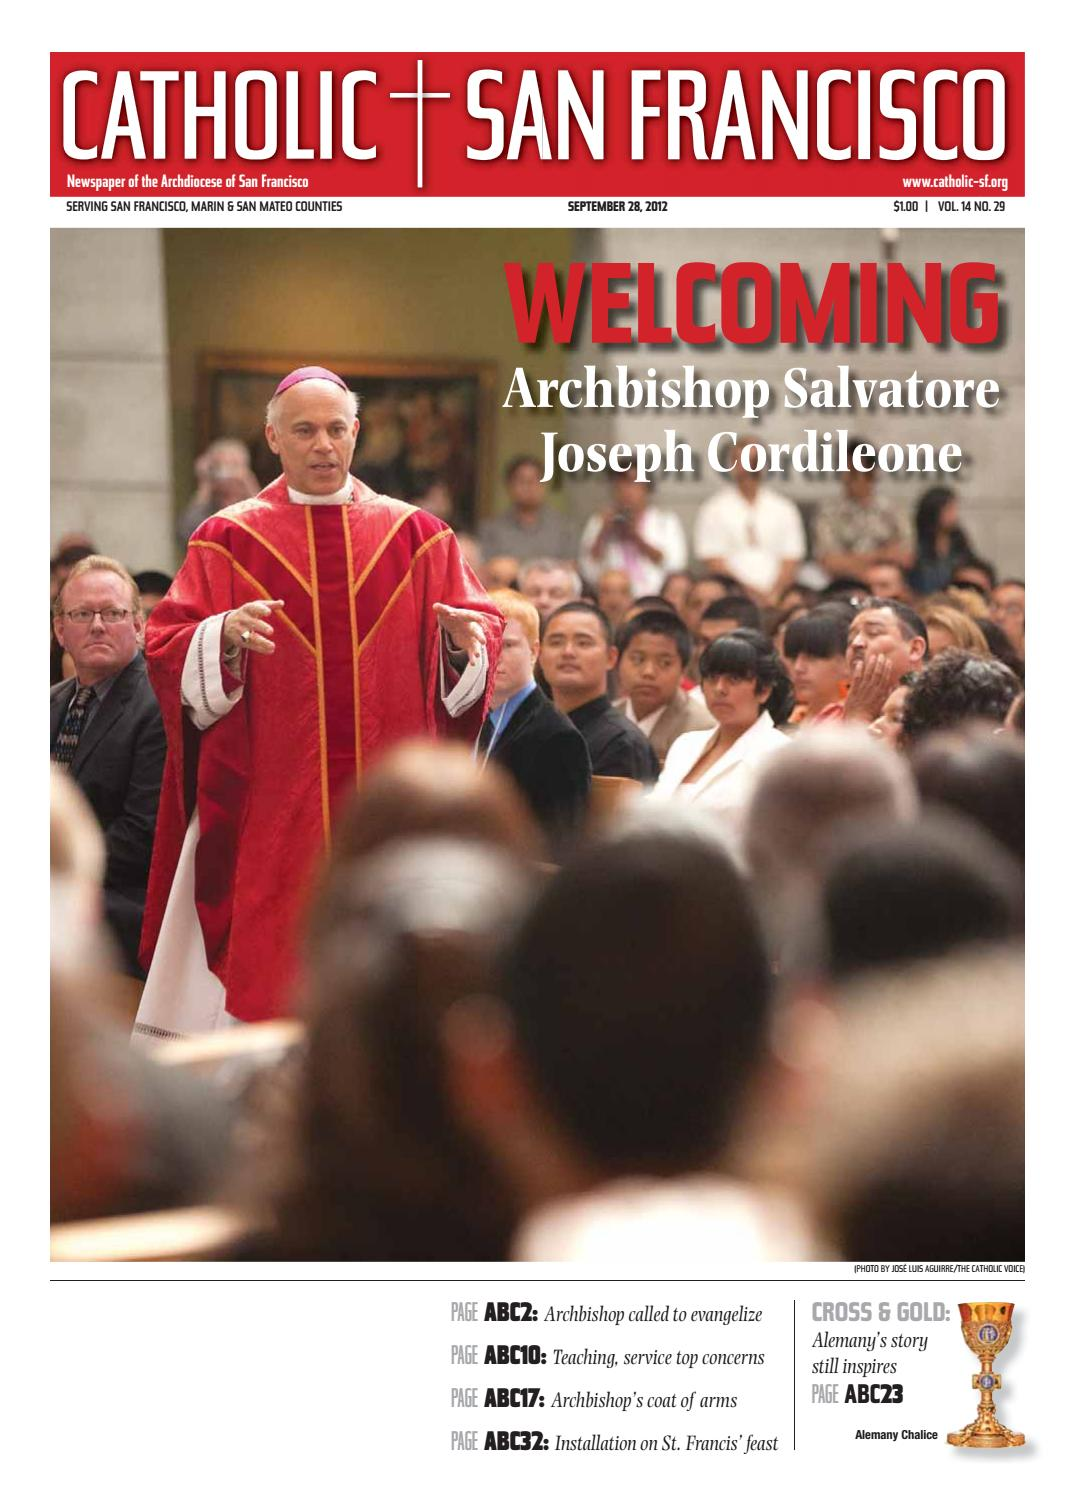 September 28, 2012 – Welcoming Archbishop Cordileone by Catholic San